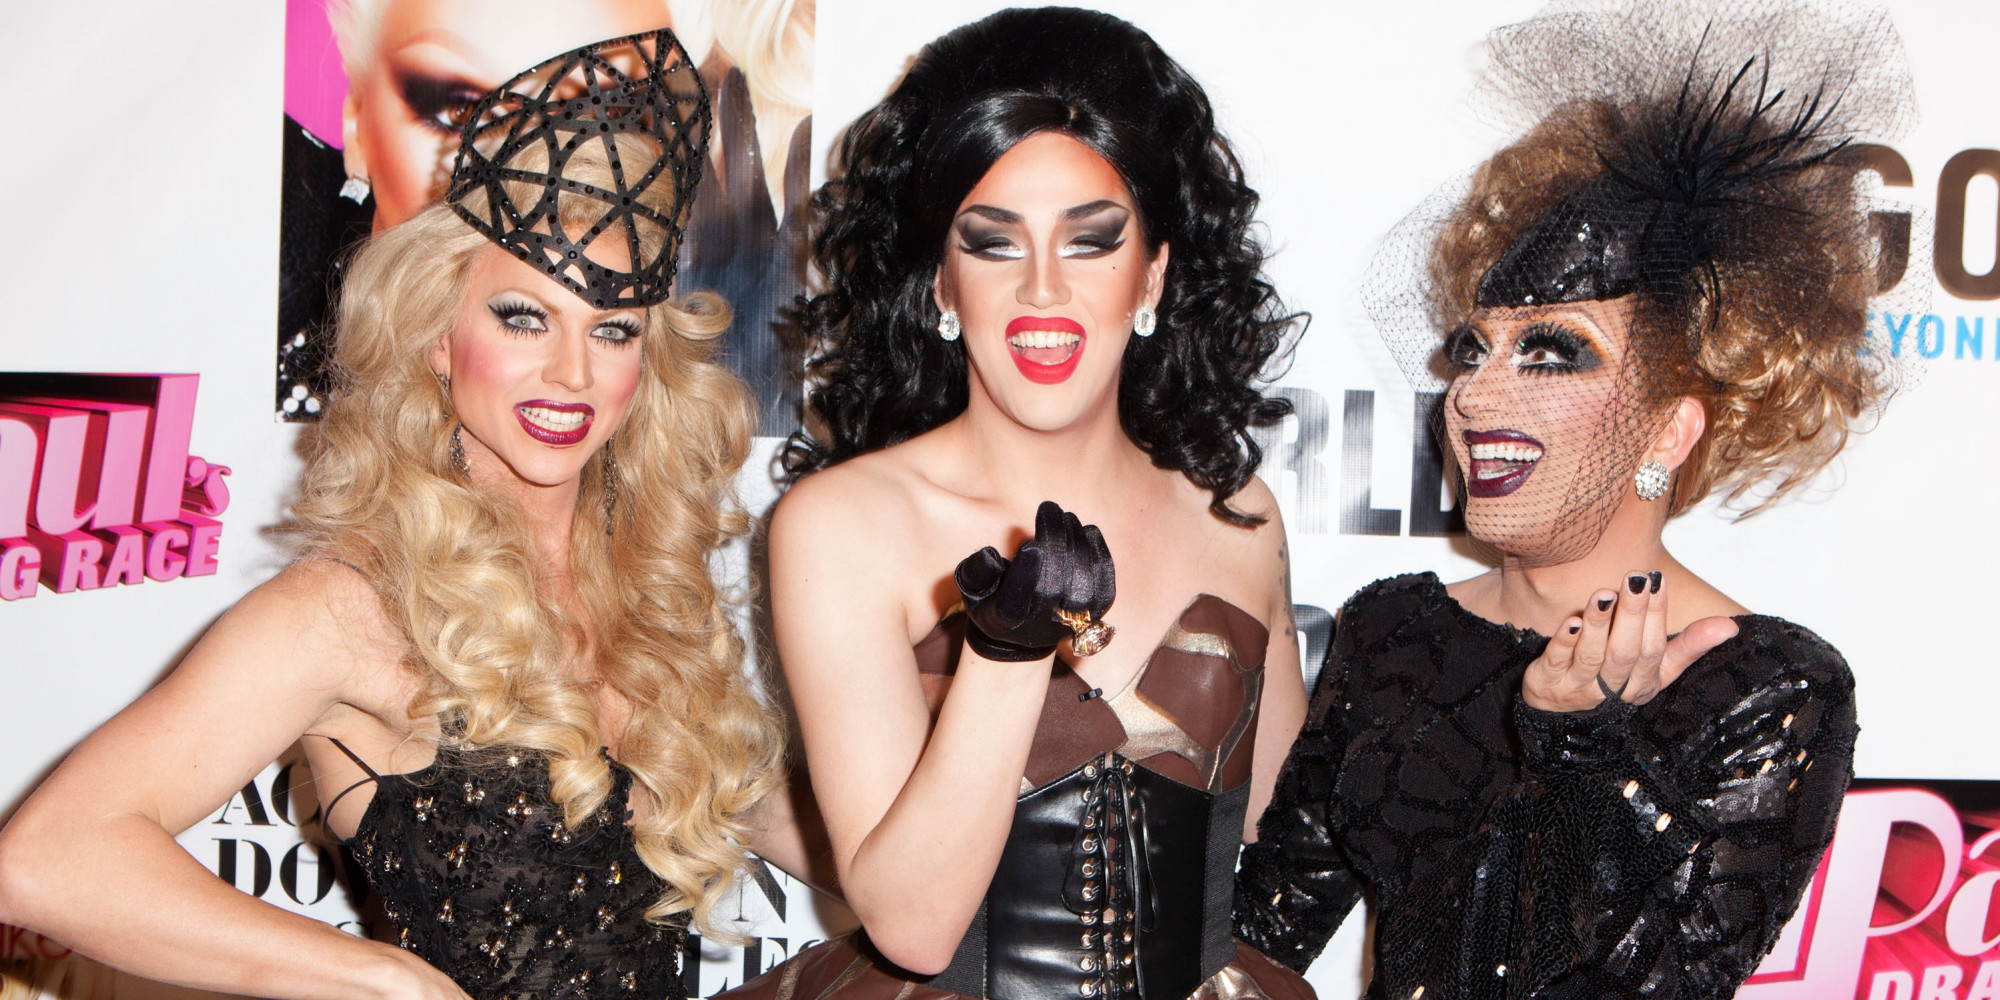 Rupauls Drag Race Season 6 Contestants